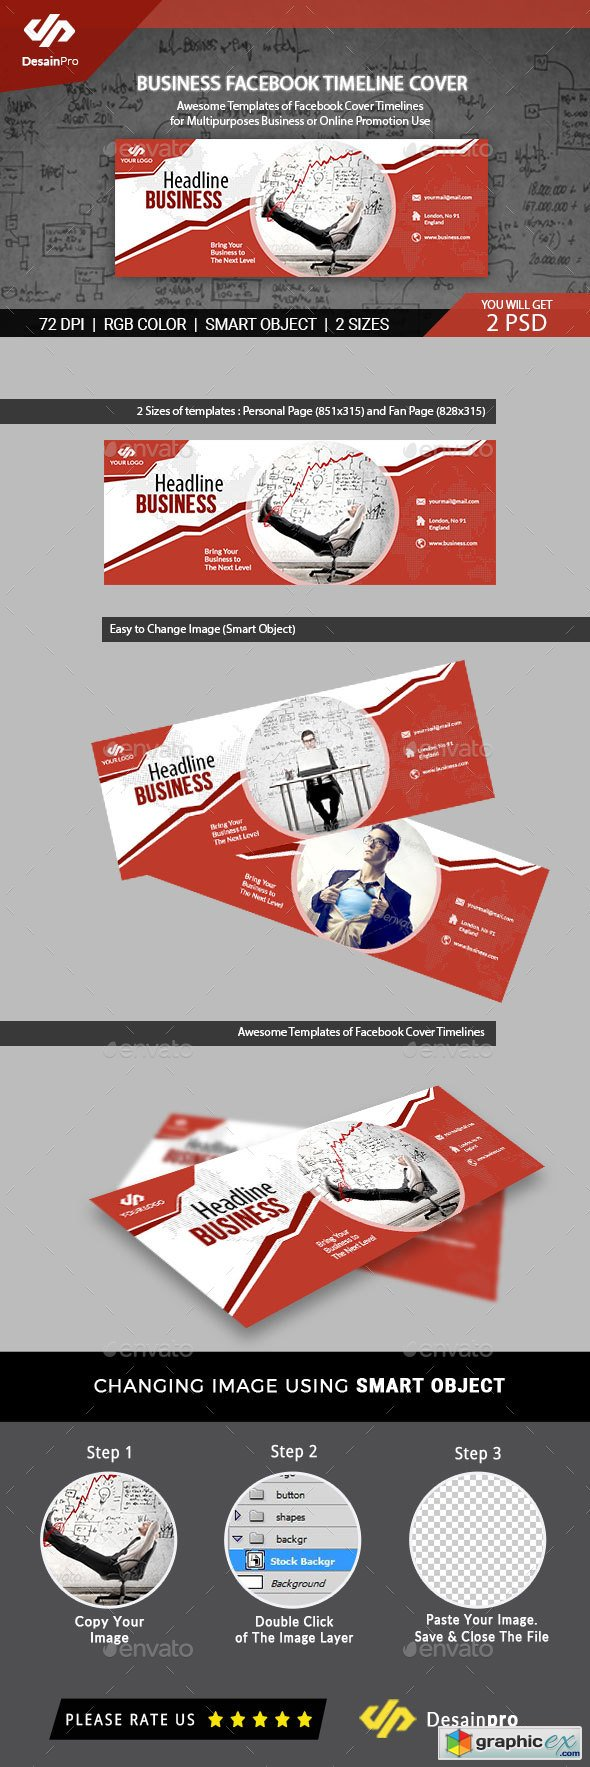 Business Services Facebook Cover Template Free Download Vector